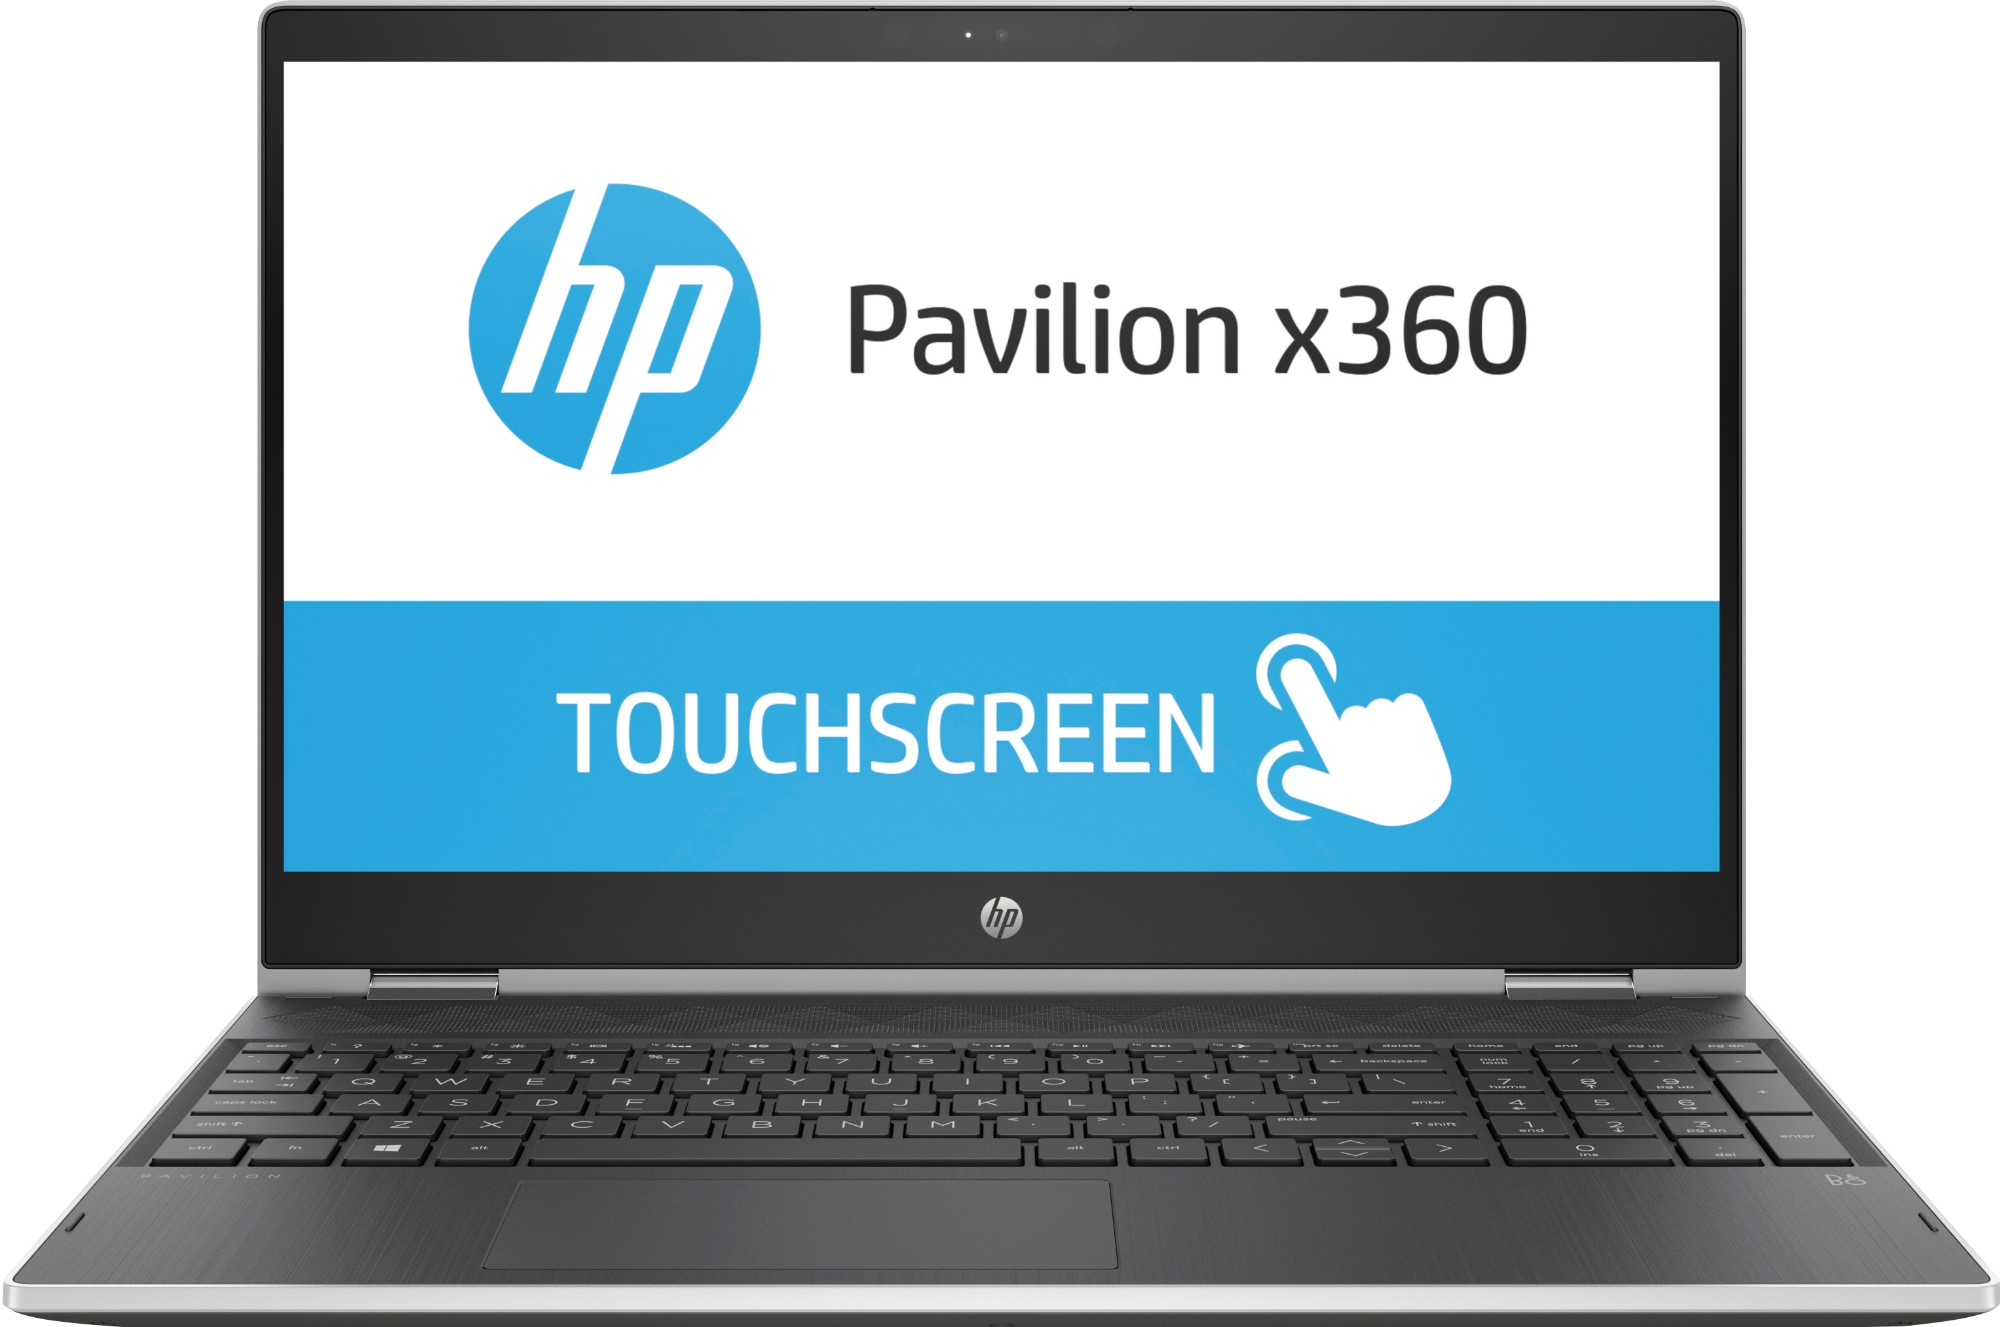 "HP Pavilion x360 15-cr0003na Silver Hybrid (2-in-1) 39.6 cm (15.6"") 1920 x 1080 pixels Touchscreen 2.2 GHz 8th gen Intel® Core™ i3 i3-8130U"